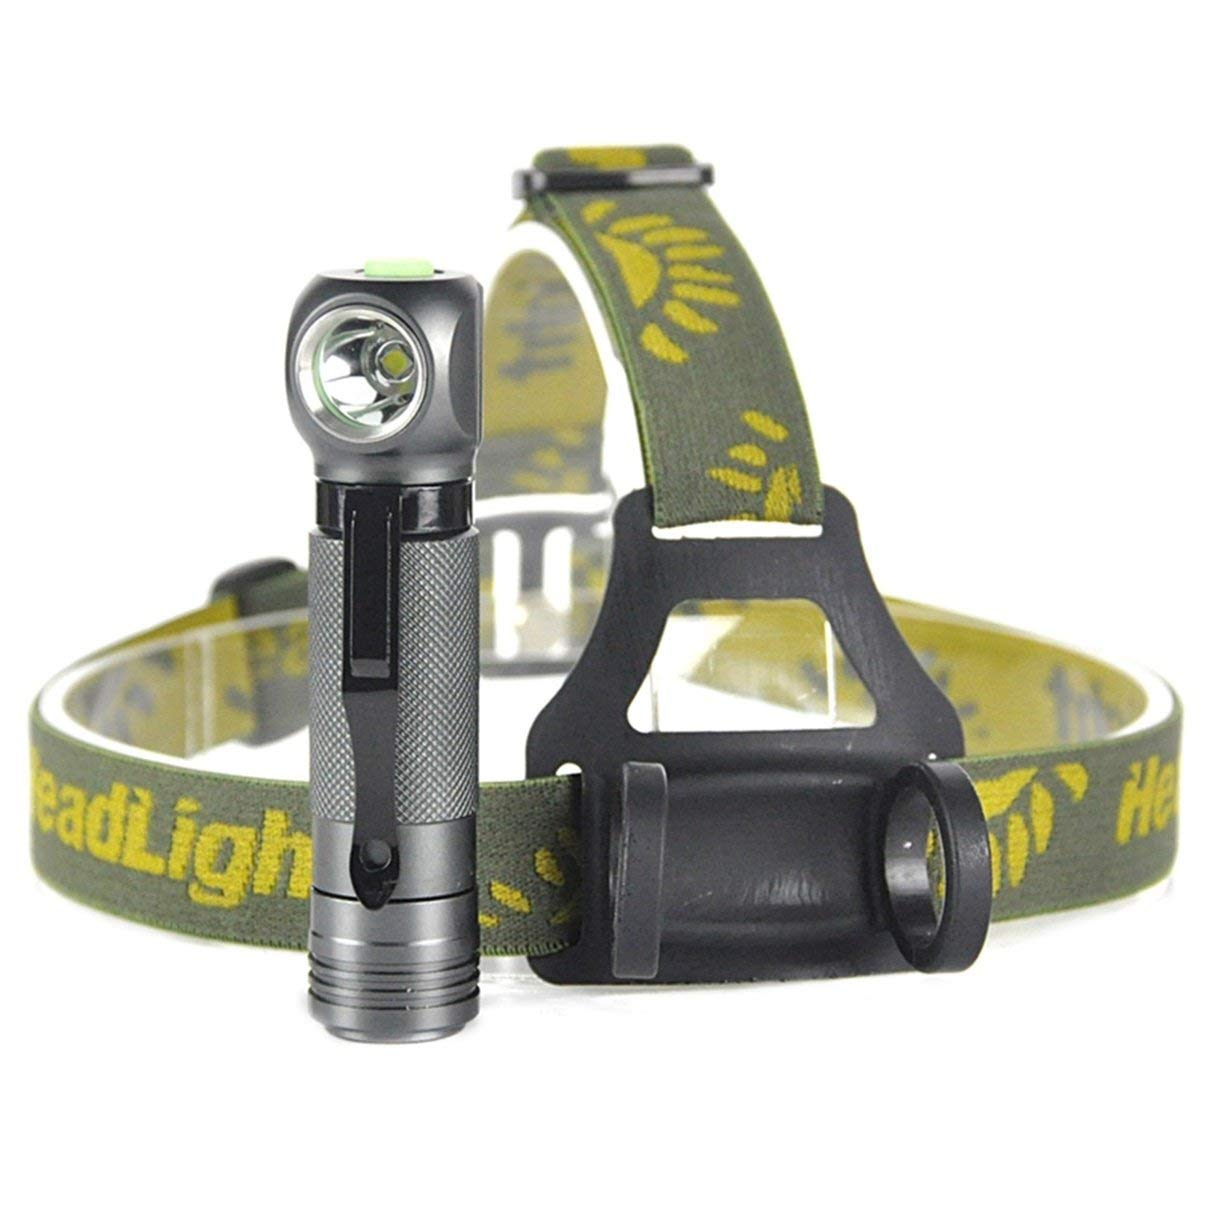 1 Set 1000 Lumen XPL V5 LED Headlamp 3 Modes Flashlights 5W Flashlight Headlight Luxurious Fashionable Ultra Xtreme Tactical Bright Light Waterproof Outdoor Running Hiking Hunting Fishing Lights